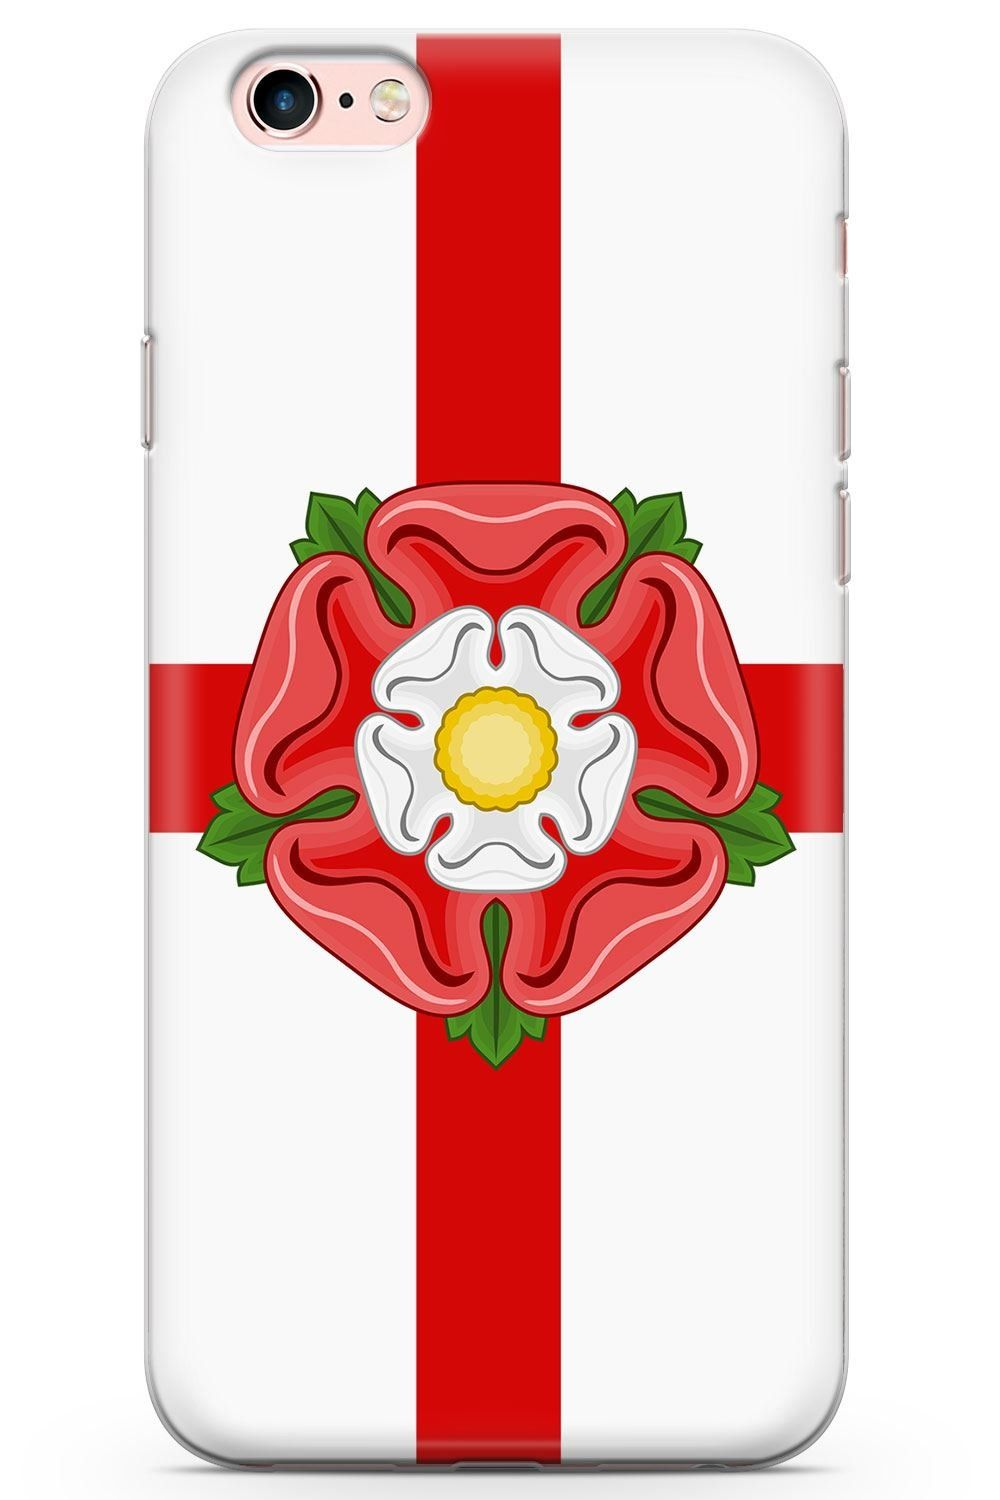 low cost 81478 95cb6 iPhone 6 Case, iPhone 6s Union Jack Flag Phone Case by: Amazon.co.uk ...